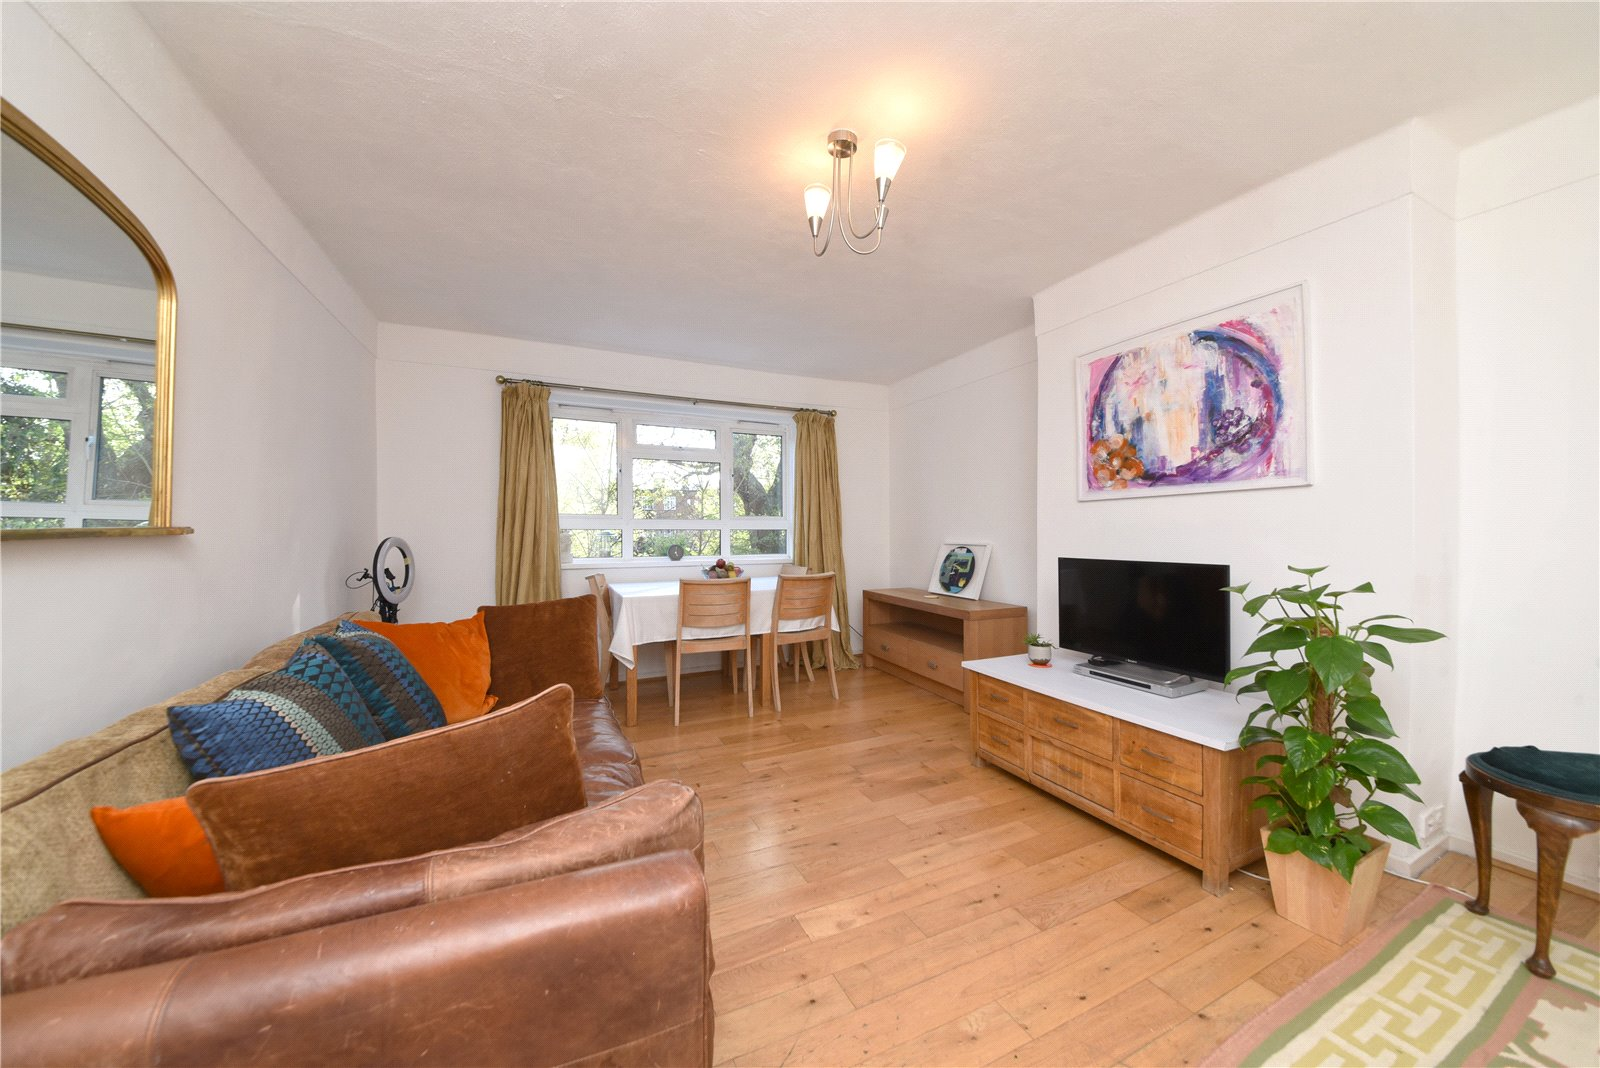 2 bed apartment for sale in Finchley, N12 8PH, N12